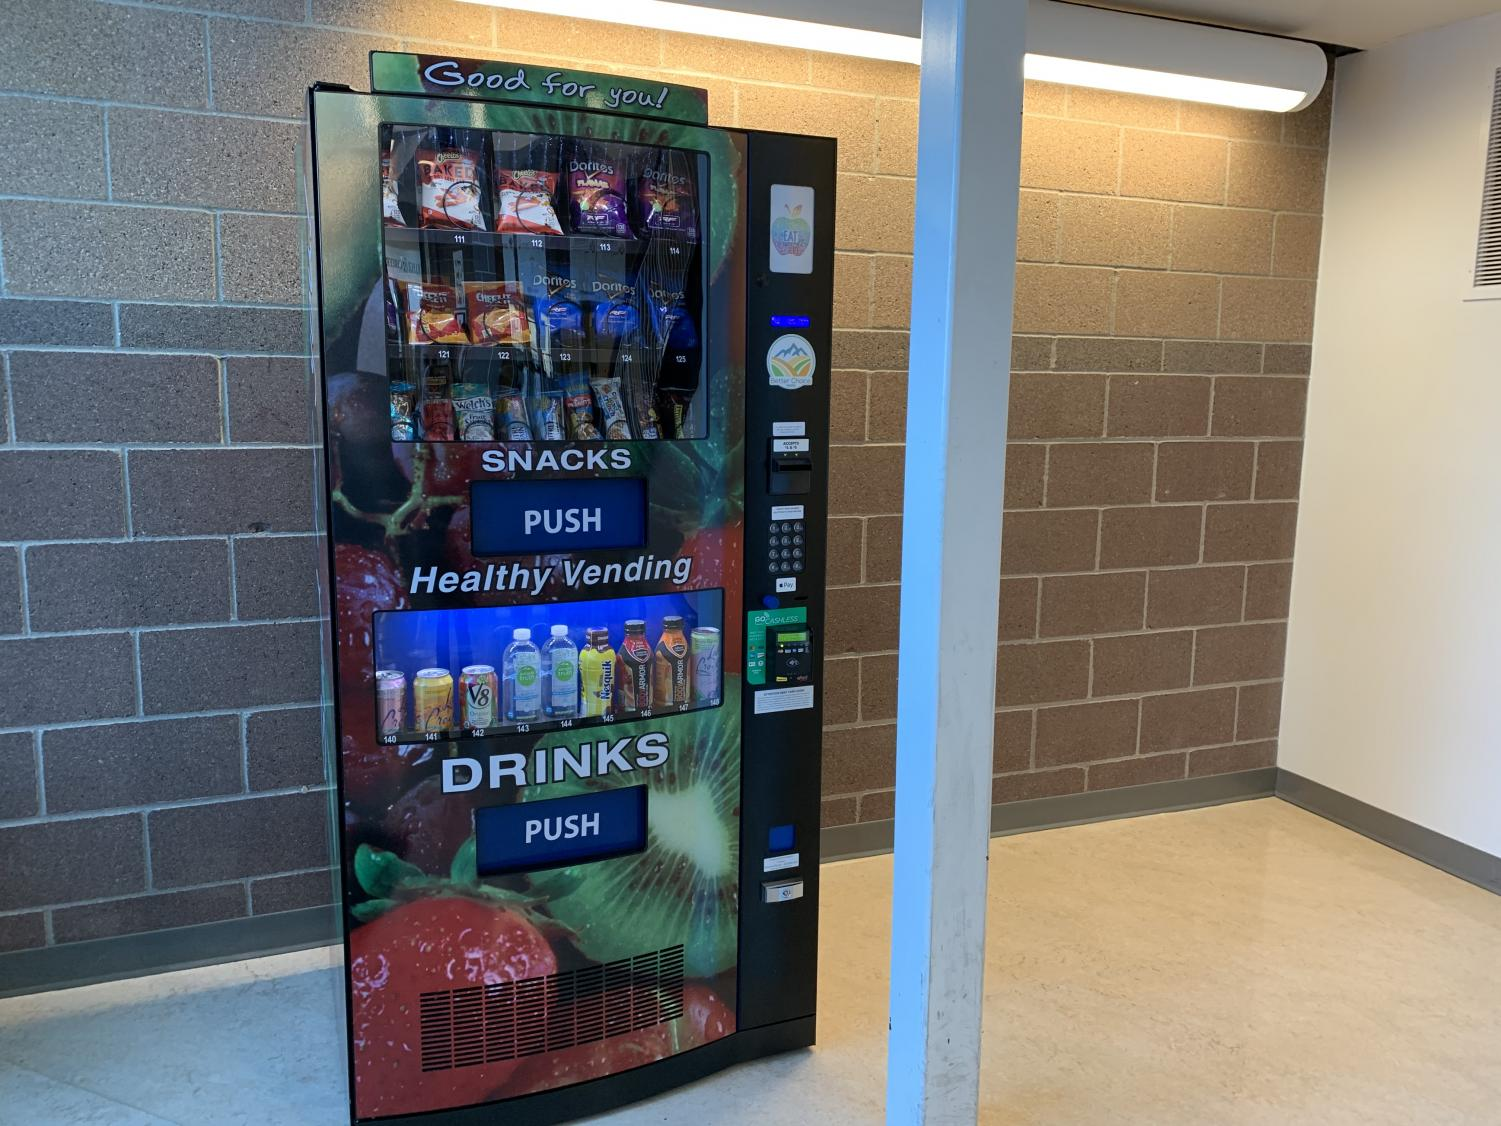 The vending machine at Mead